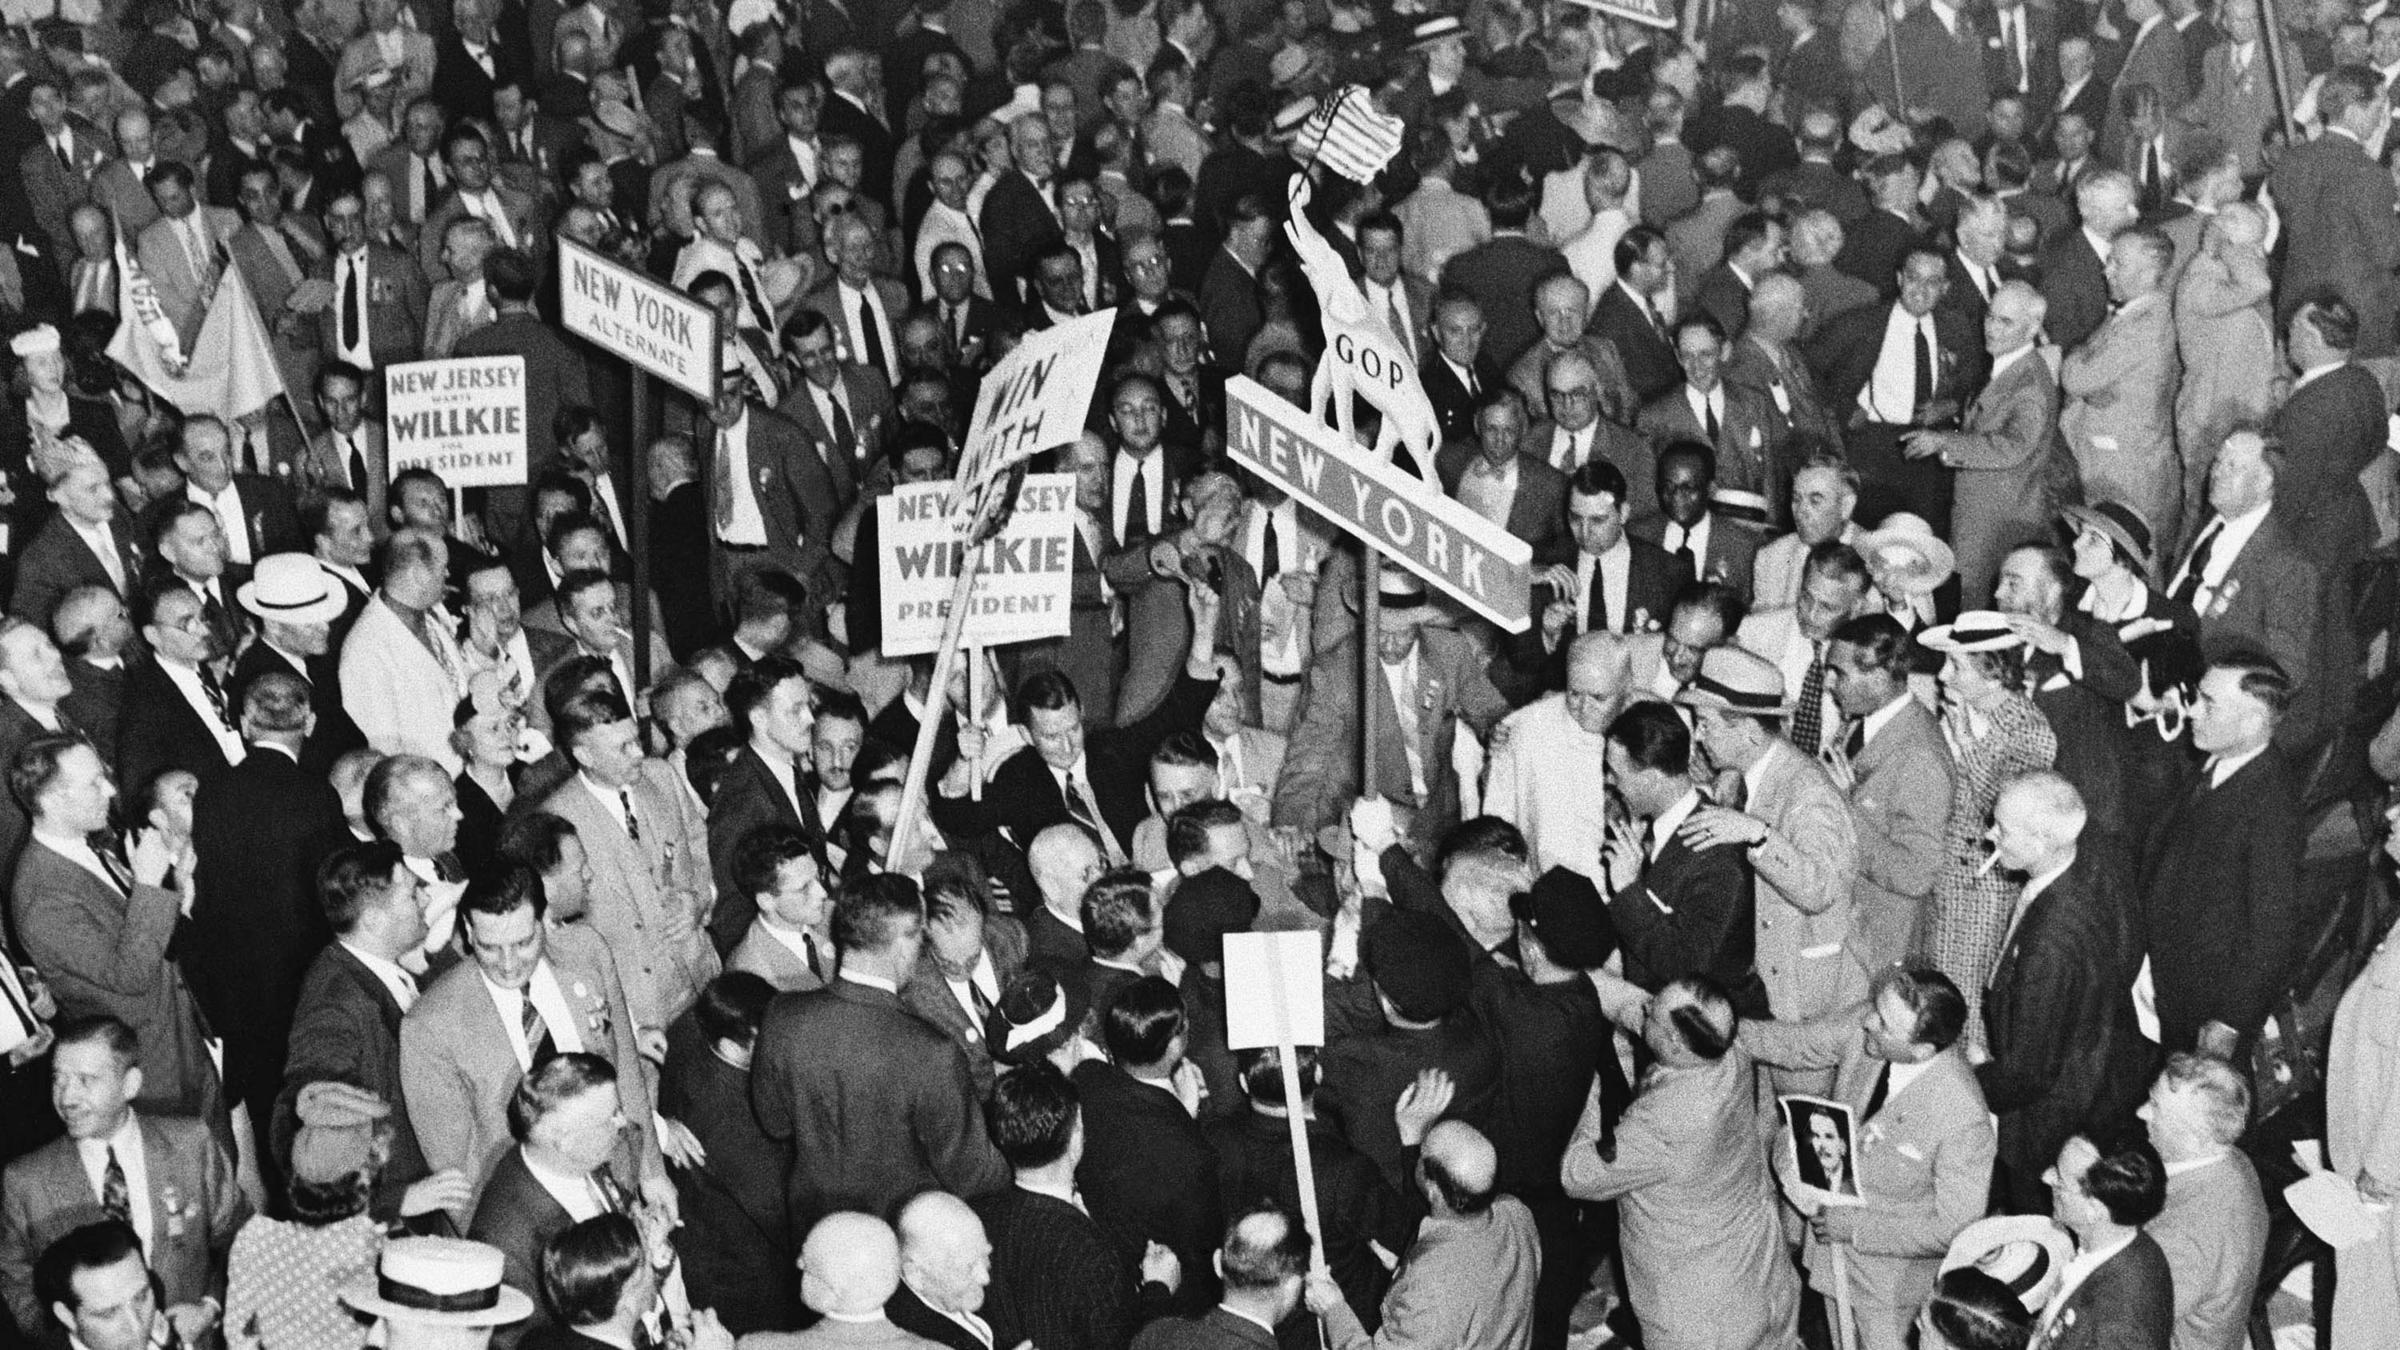 After Wendell Wilkie Was Nominated In Philadelphia 1940 Adherents The New York Delegation Tried To Take State Banner Into Parade And